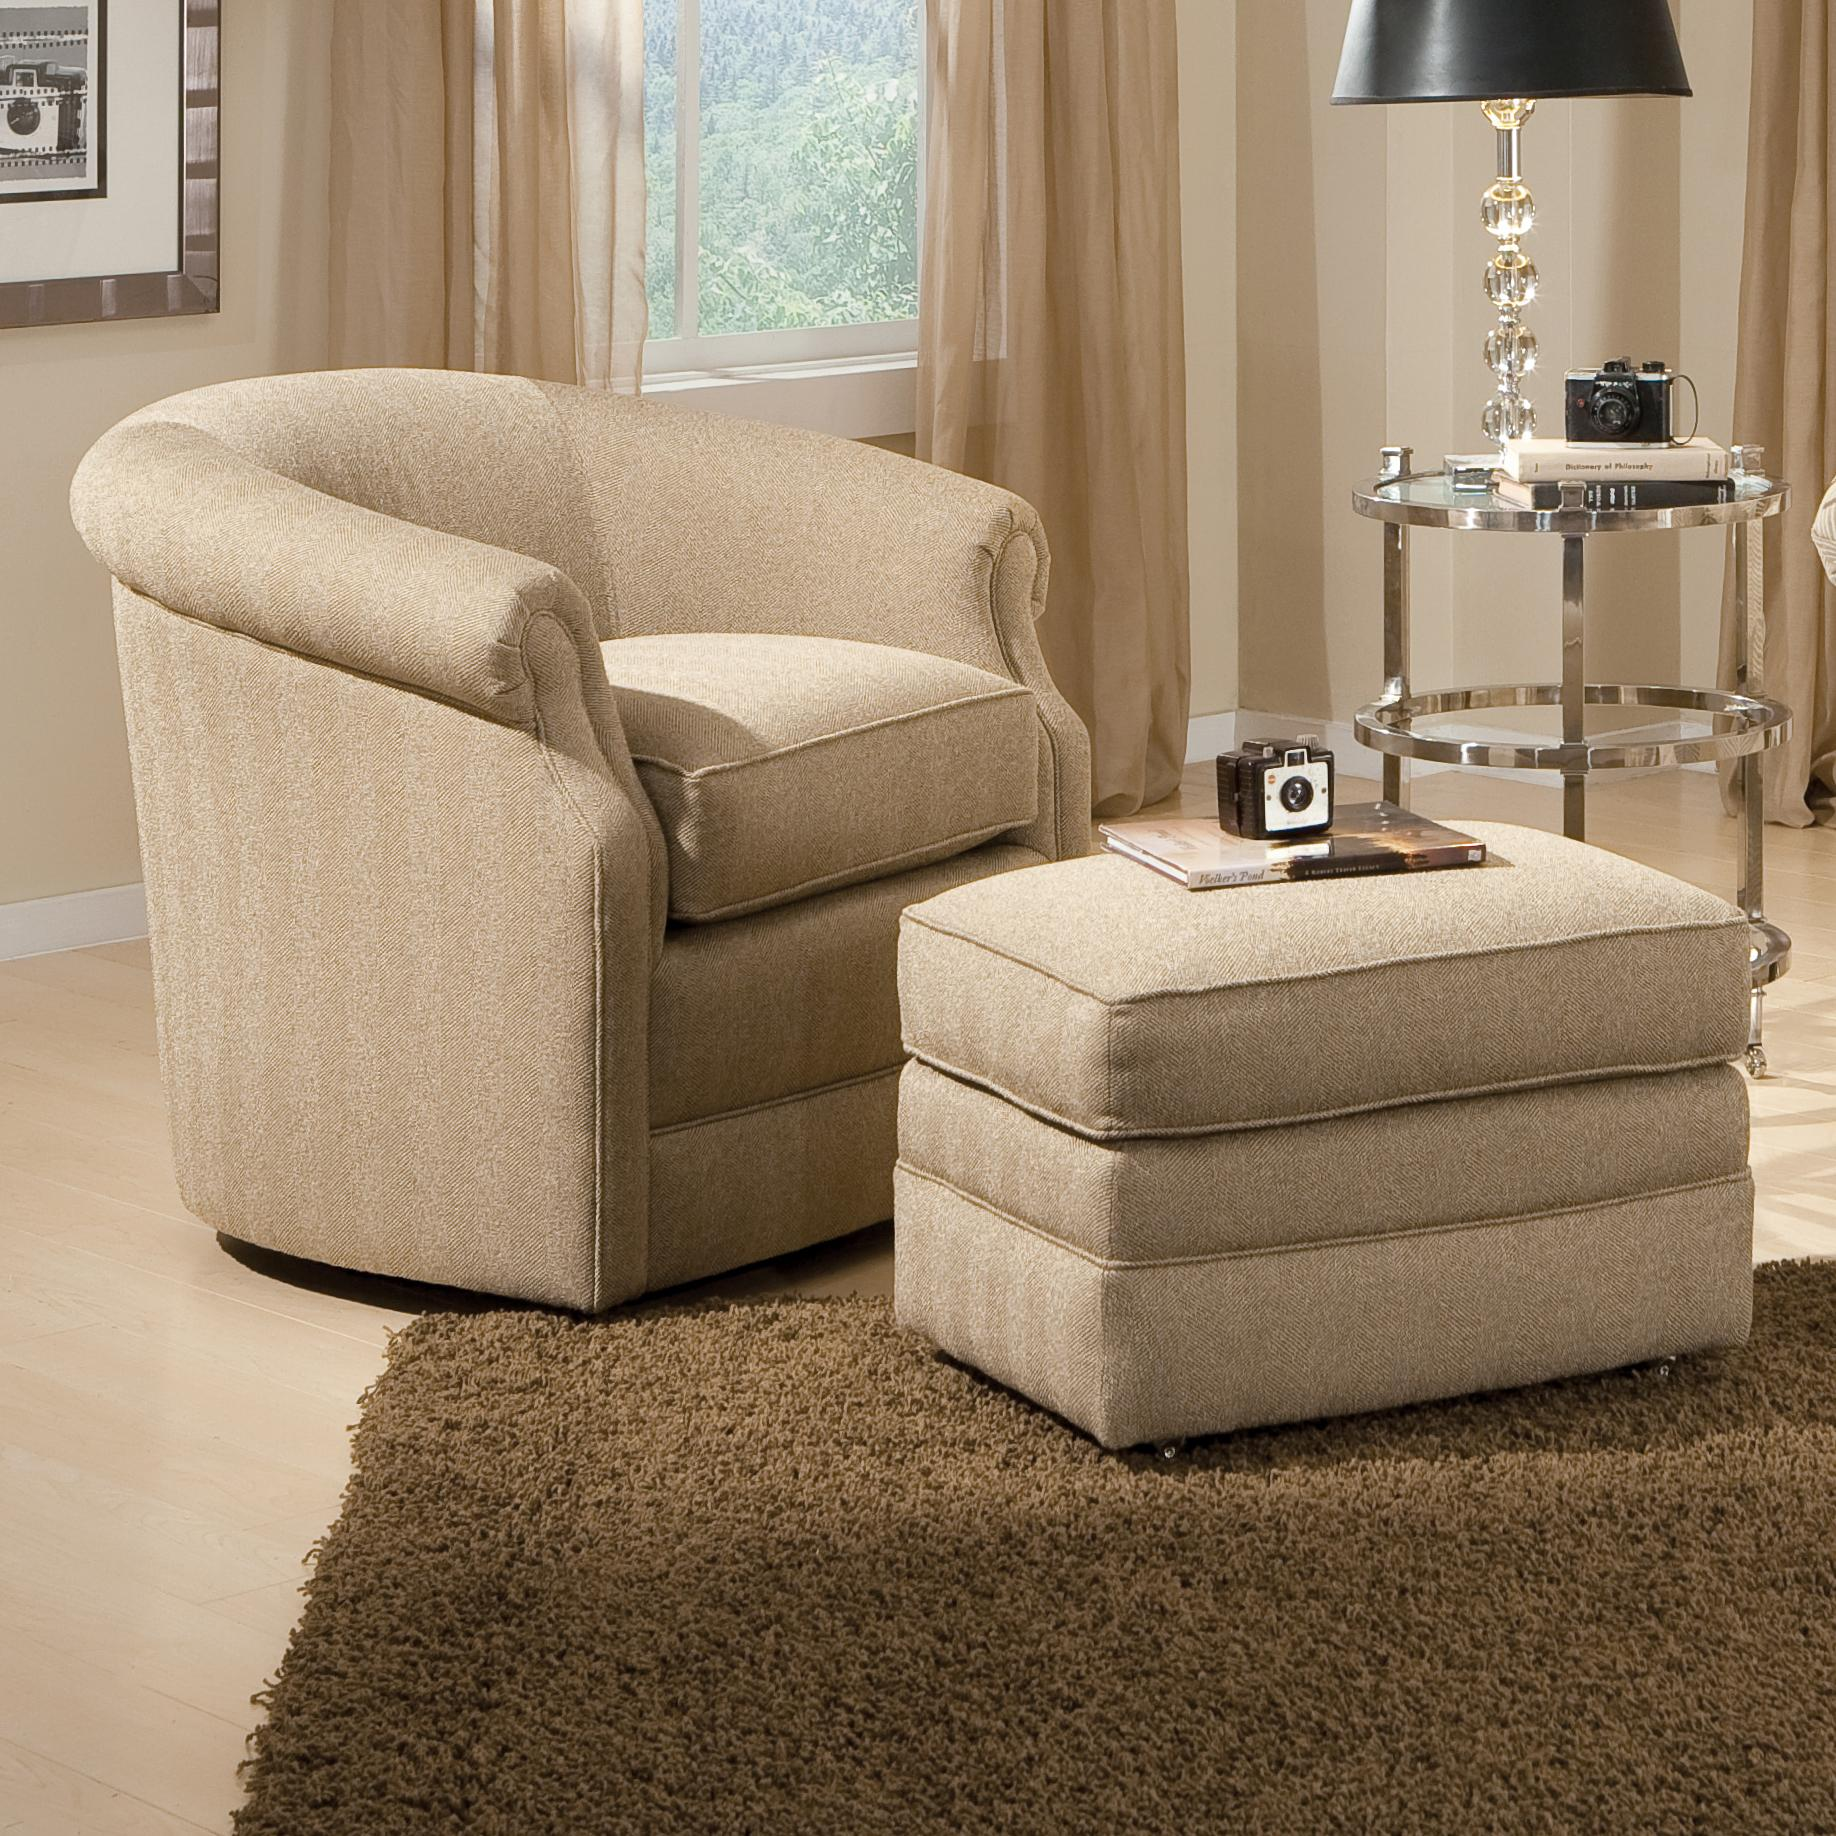 Accent Chair Living Room Accent Chairs And Ottomans Sb Barrel Swivel Chair And Ottoman With Casters By Smith Brothers At Dunk Bright Furniture